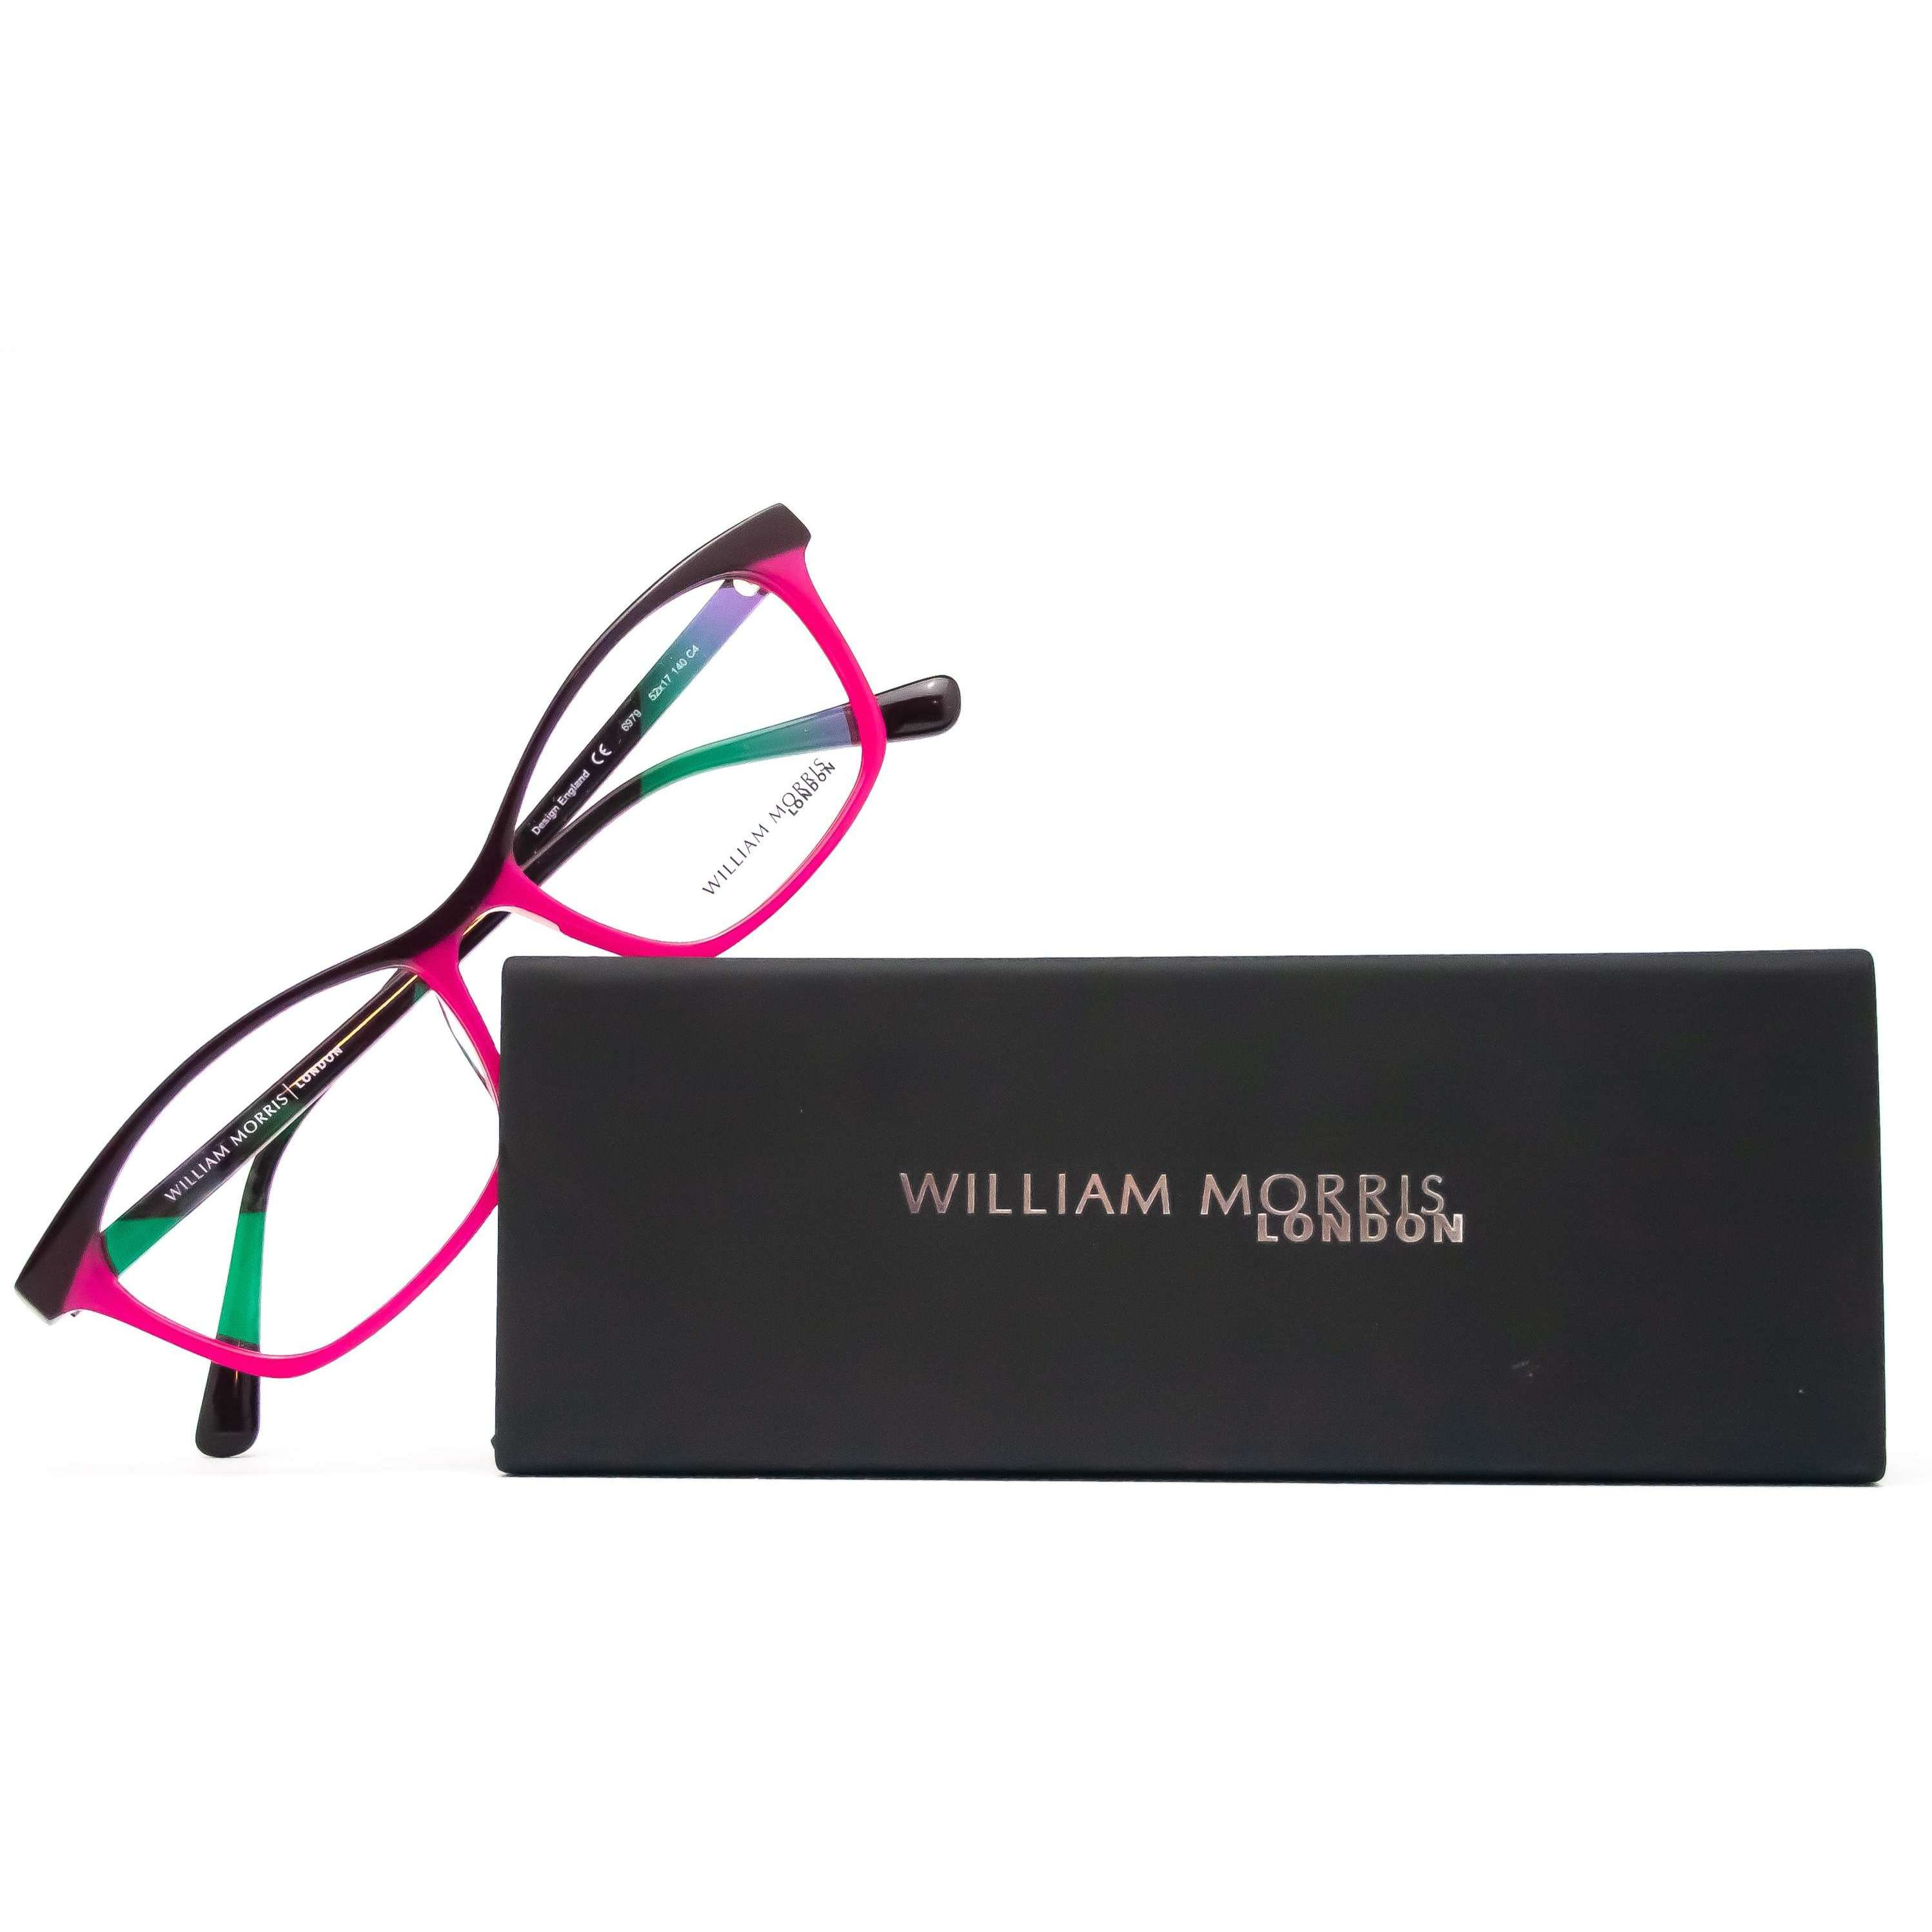 William Morris London Model 6979 Black Cat Eye Glasses